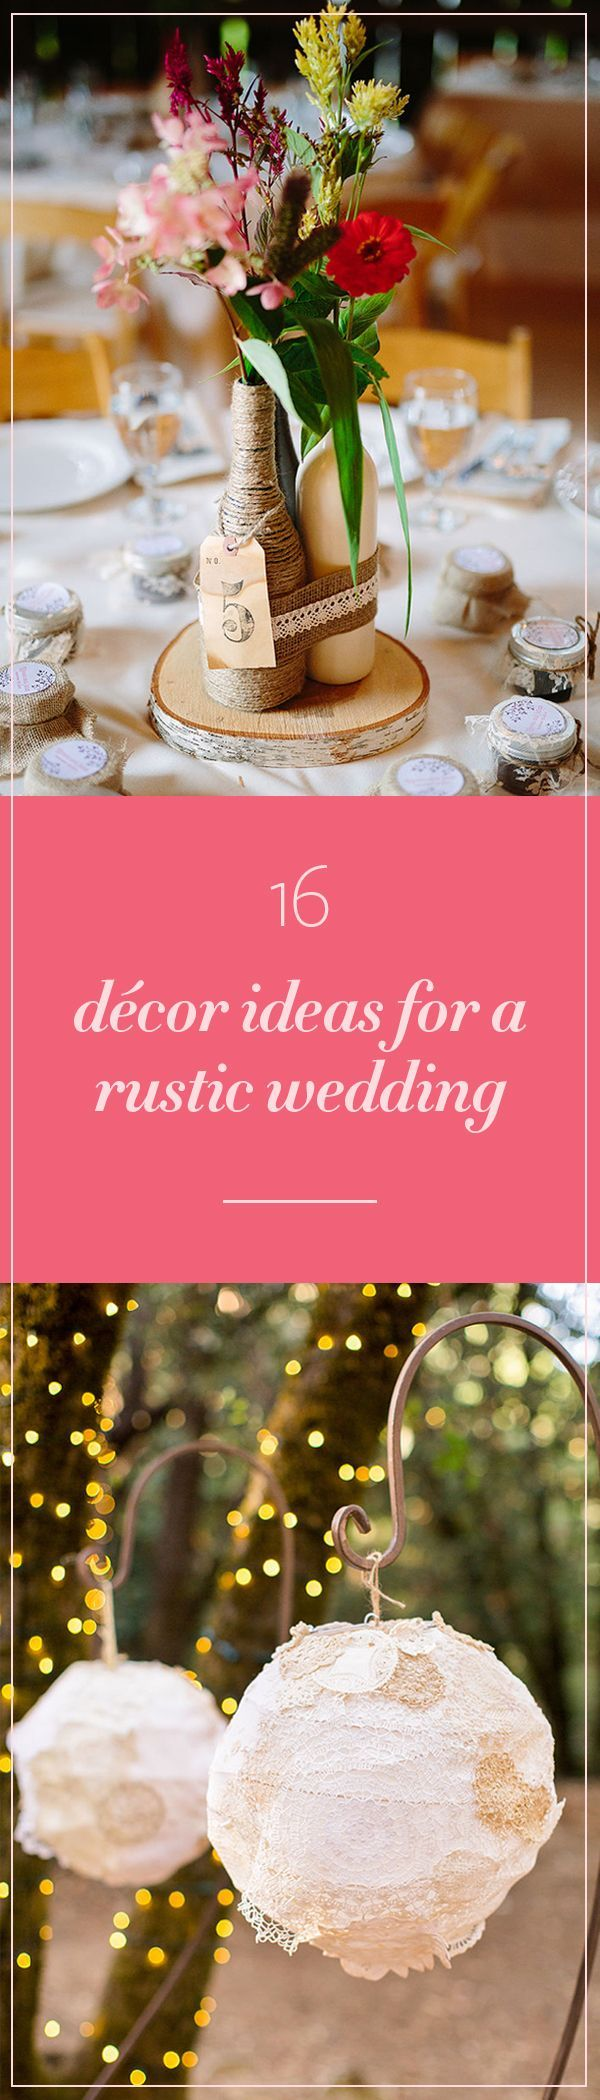 16 Décor Ideas For a Rustic Wedding | Wedding, Perfect wedding and ...